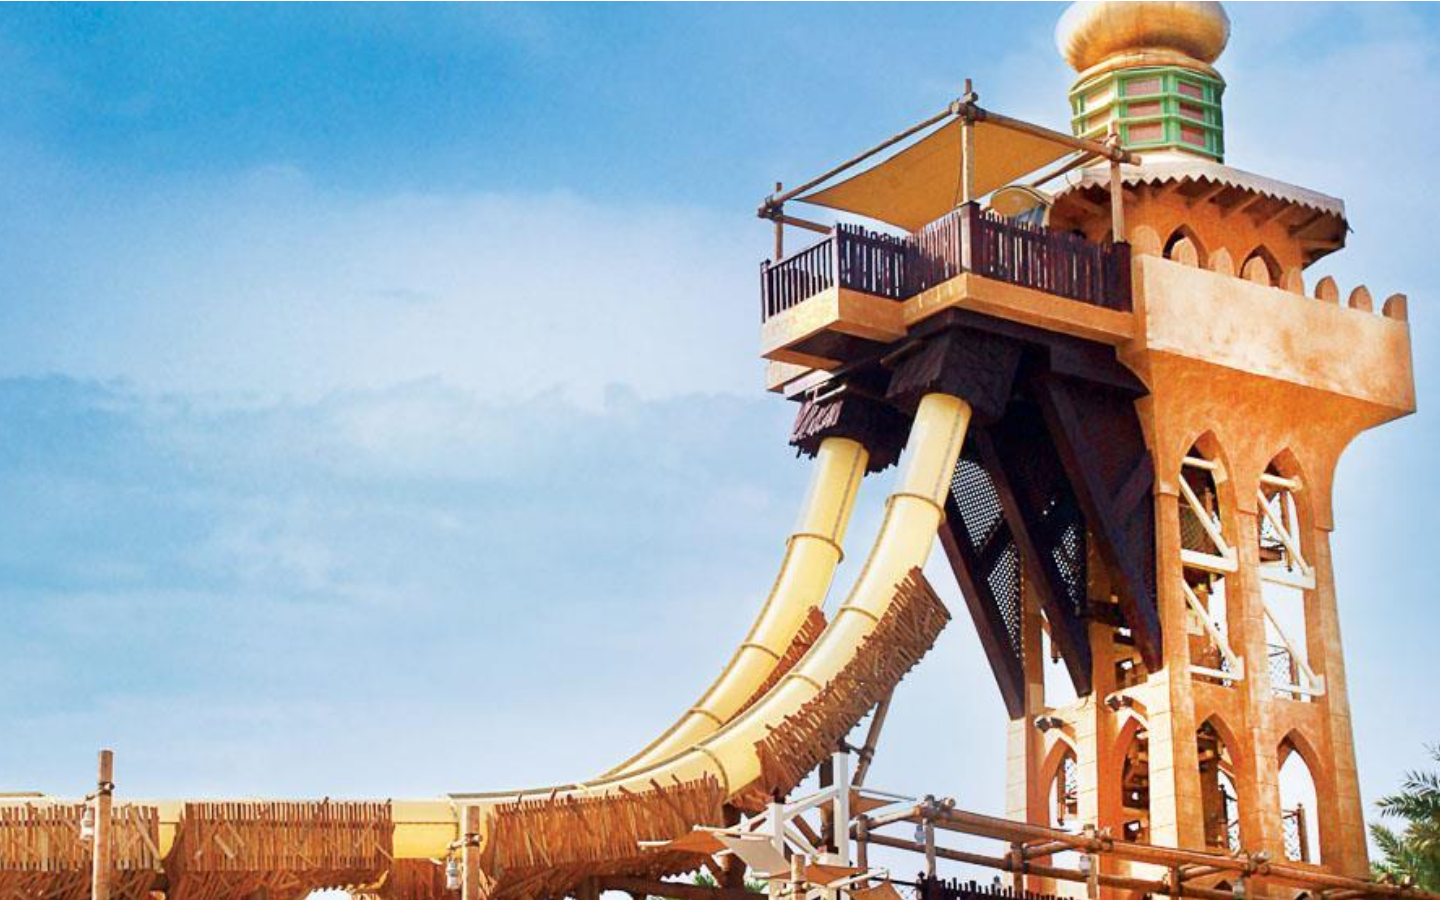 Wild Wadi is the most famous water park in Dubai